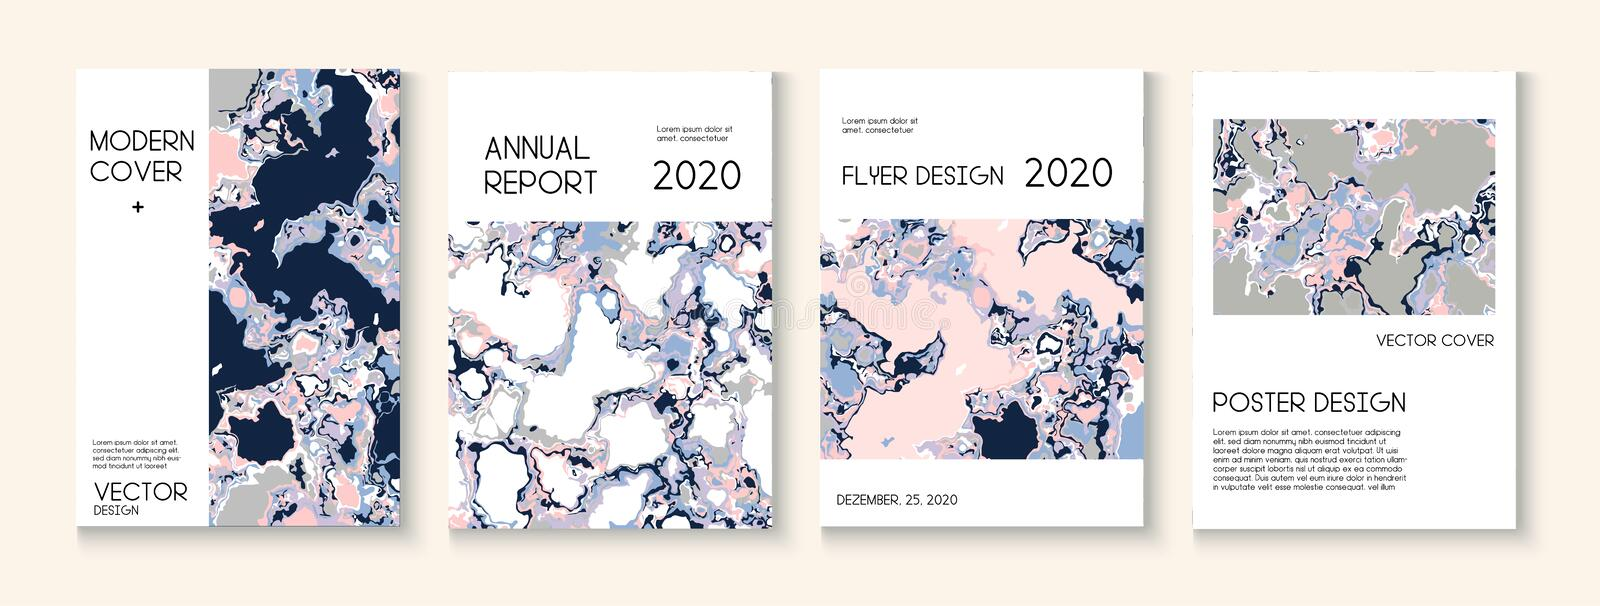 Fluid Paint, Clay Texture Vector Cover Layout. Trendy Magazine, Music Poster Template. Modern Earth Day Ecology Poster. Geographic Map Fluid Paint Vector Cover vector illustration